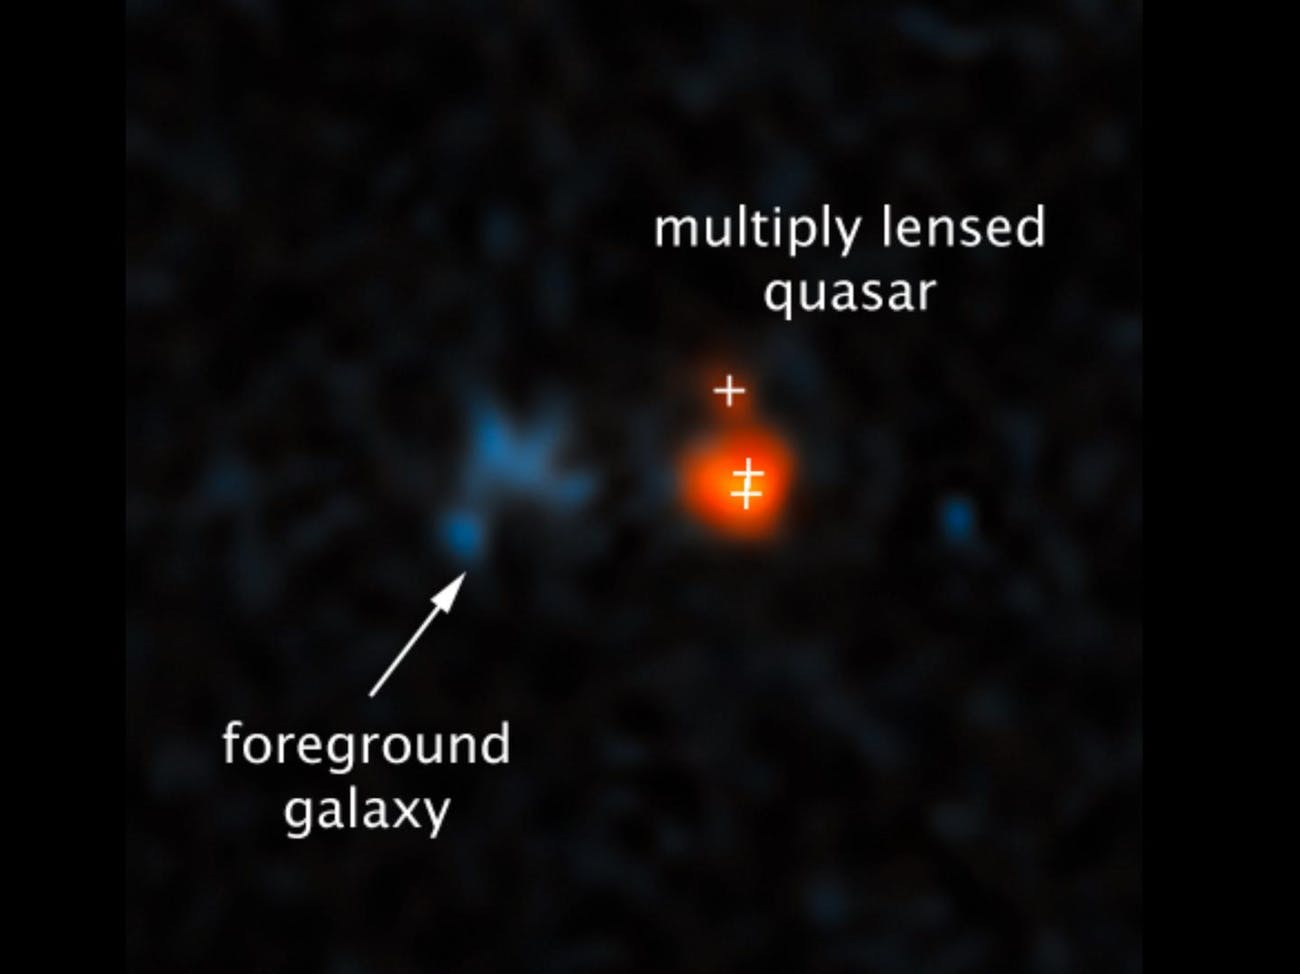 Fan and his collaborators observed the quasar named J043947.08+163415.7 because a galaxy in the foreground bent and magnified the light from the distant object. This image, taken by the Hubble Space Telescope, shows how the gravitational lensing effect made the quasar appear split into three.